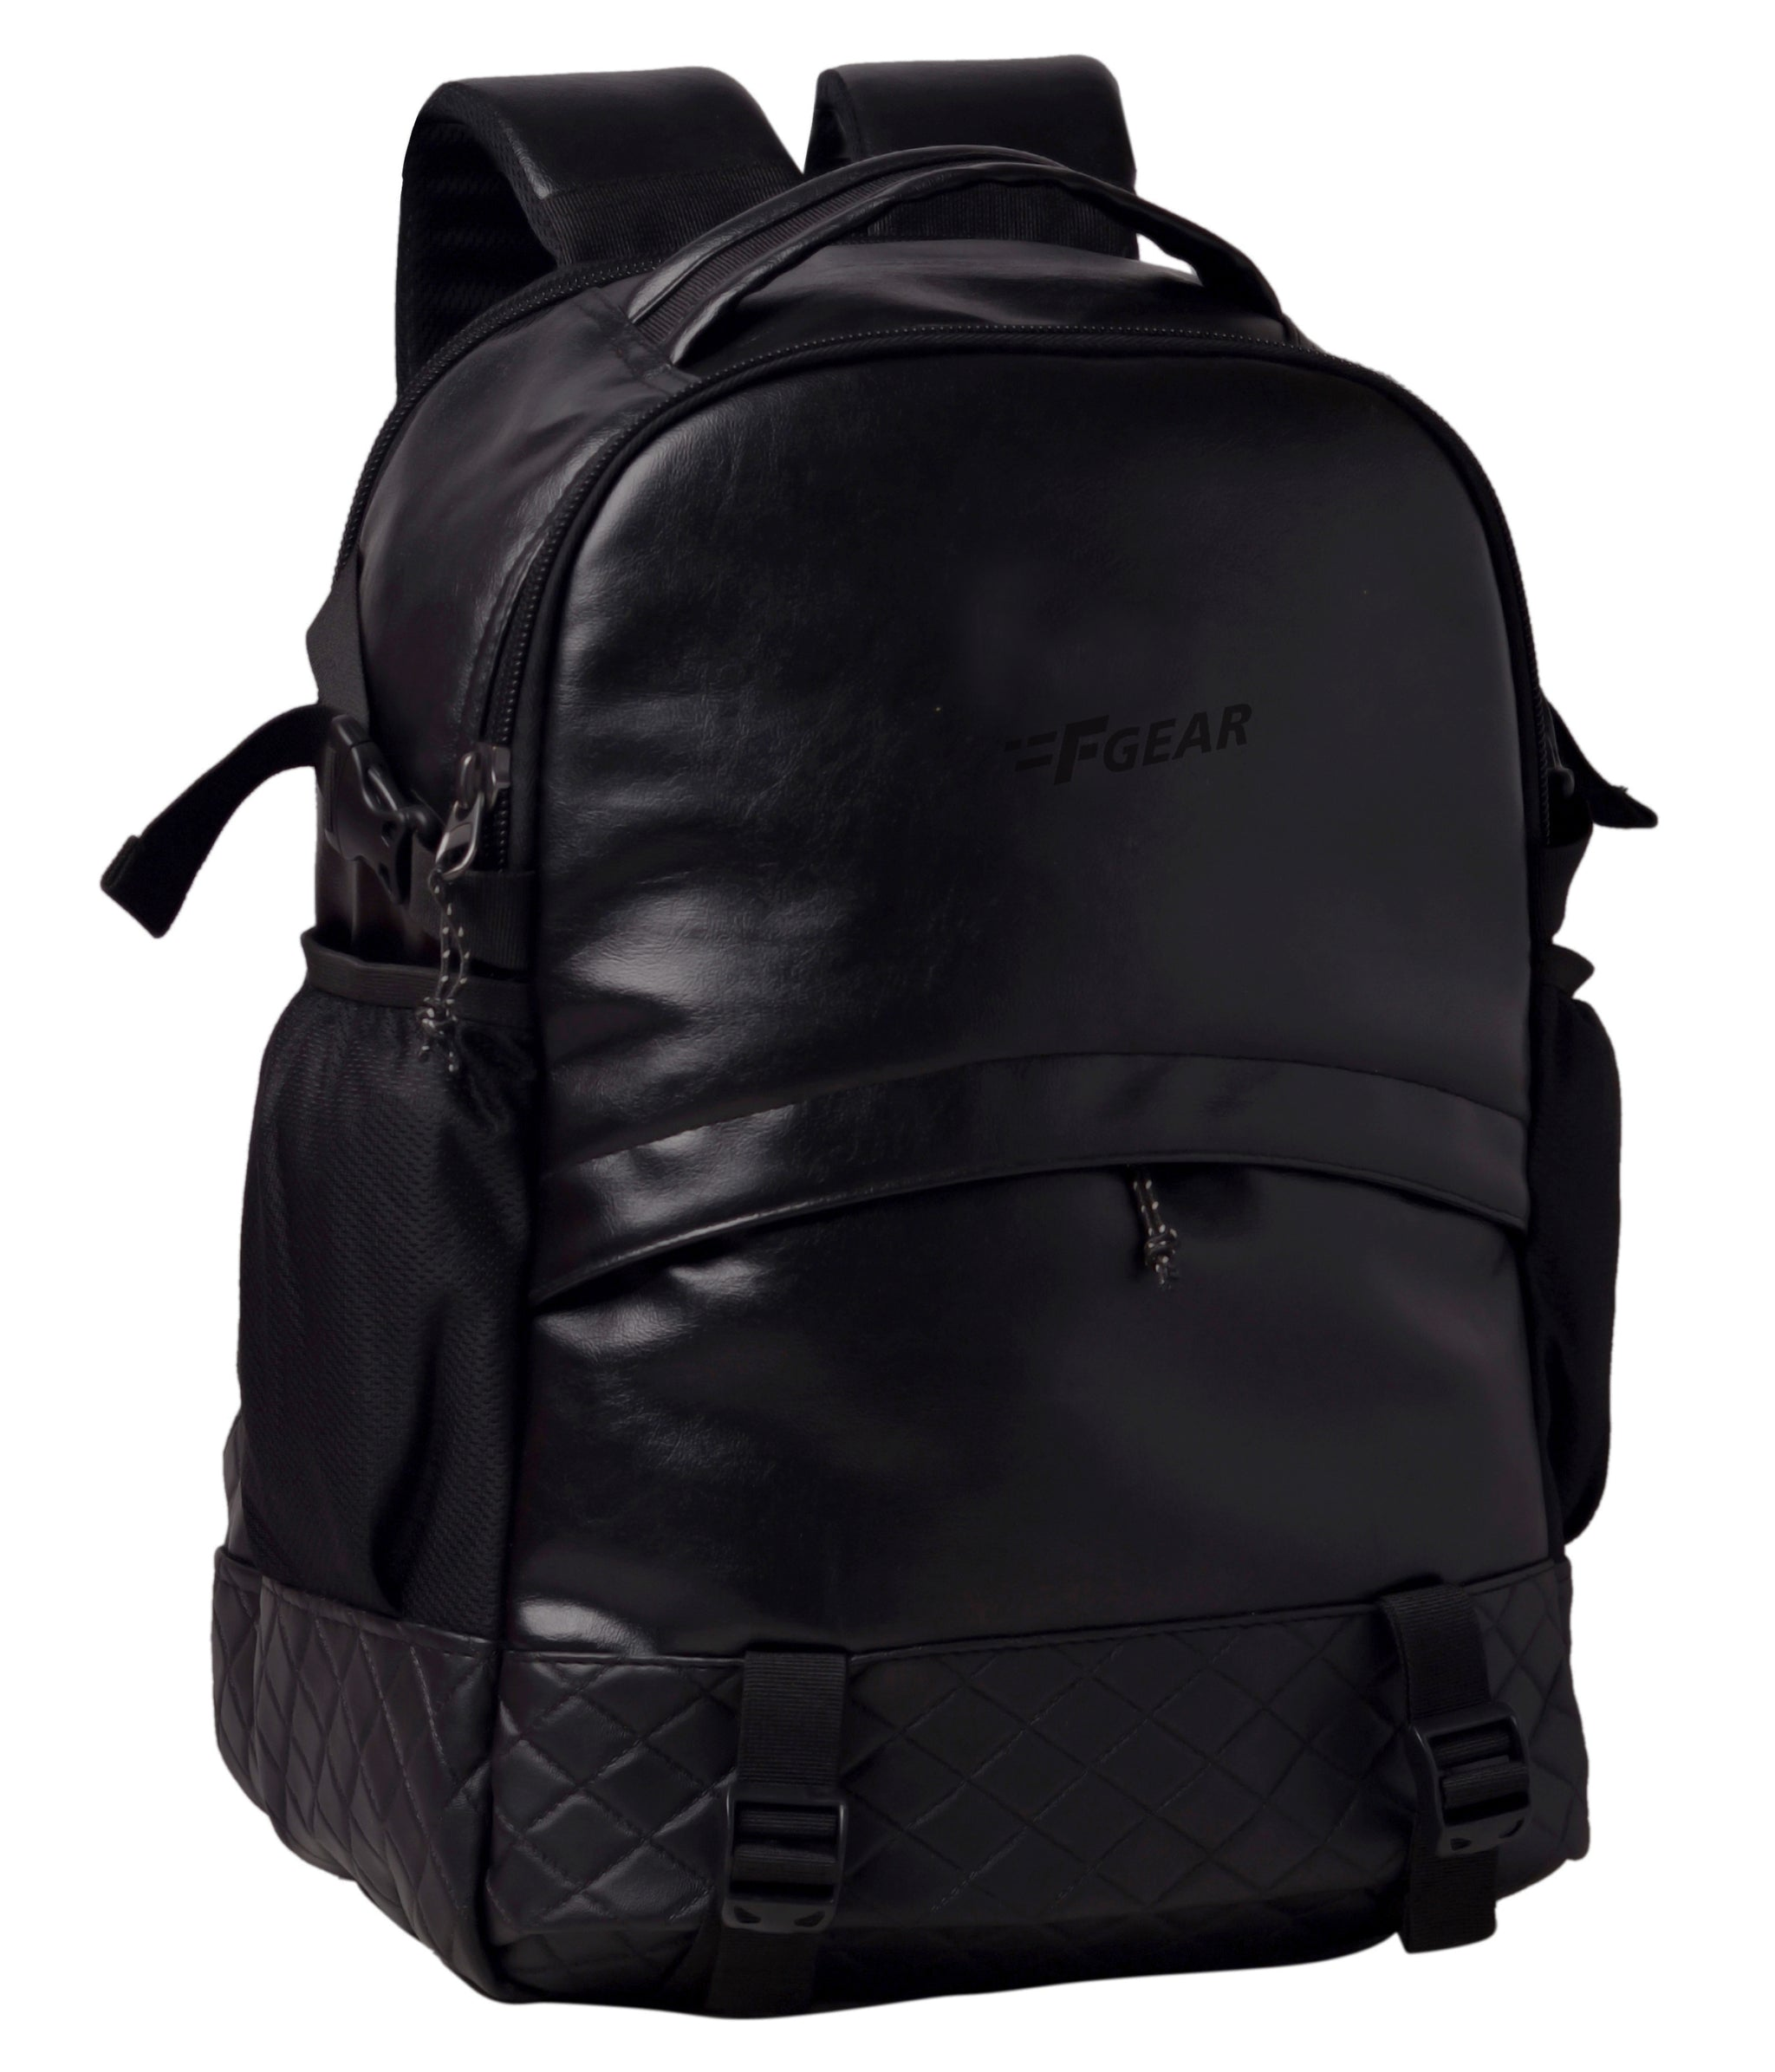 F Gear Sedna 27 Ltrs Black Artificial Leather Casual Backpack (2598)